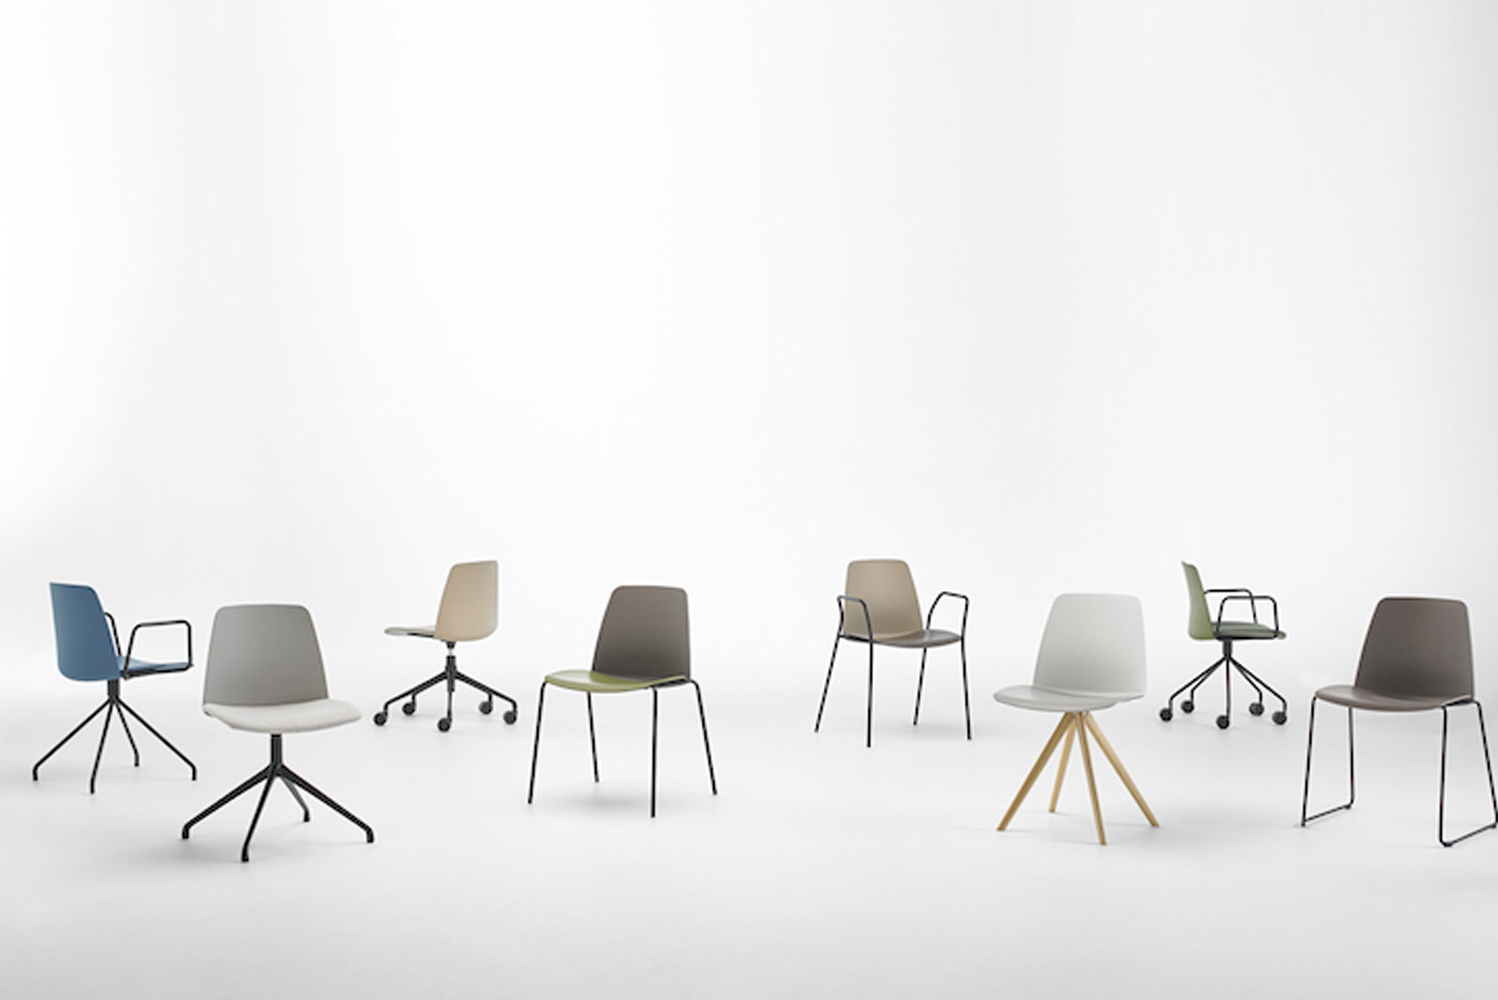 Unnia is also available with casters, as a barstool, and upholstered as a swivel armchair.